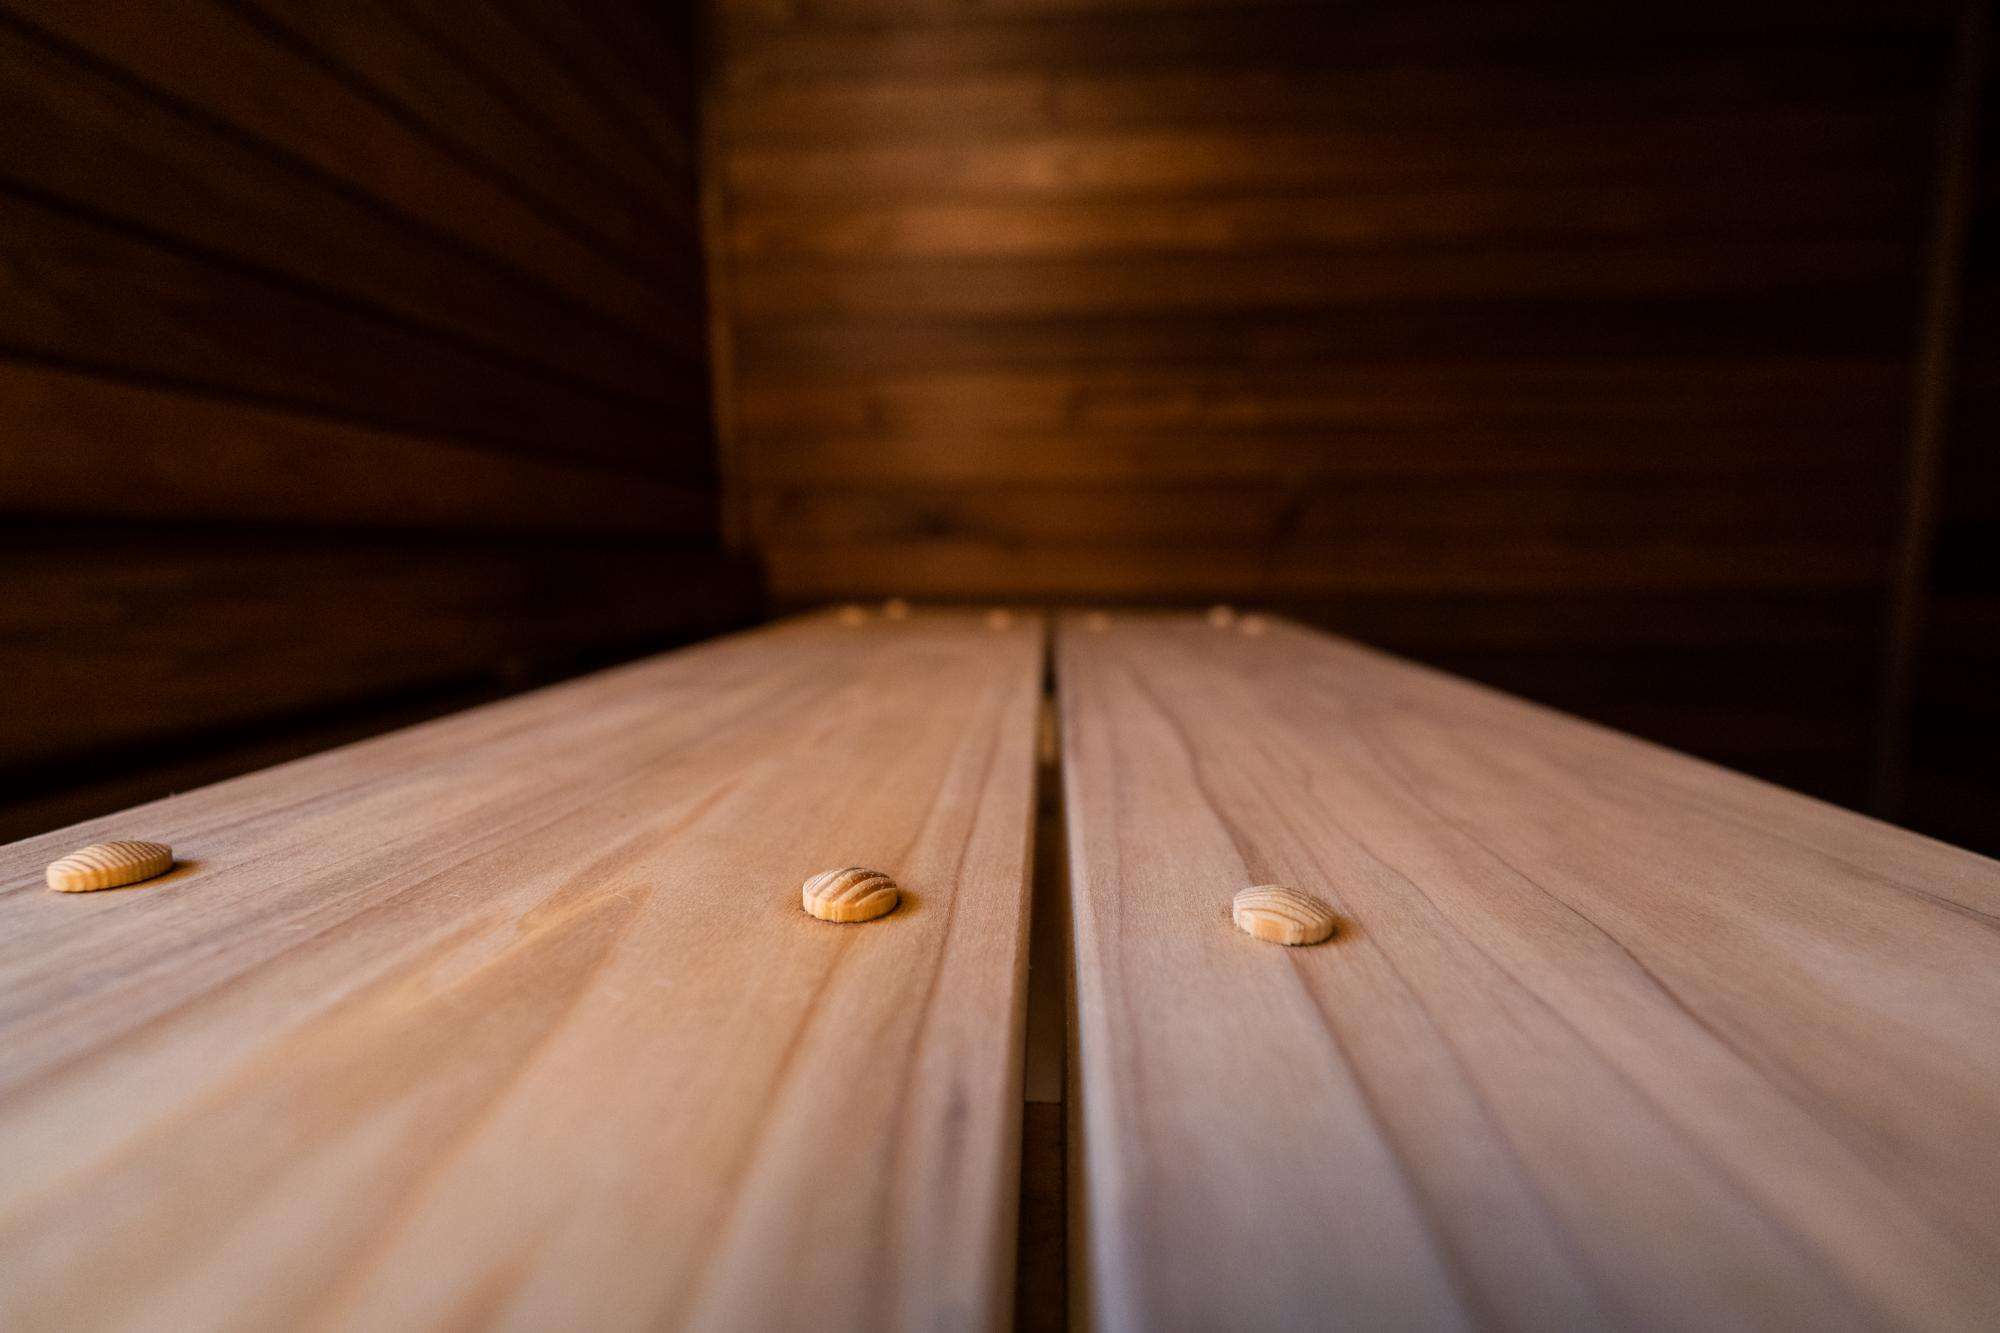 Tulipwood sauna panels and benches